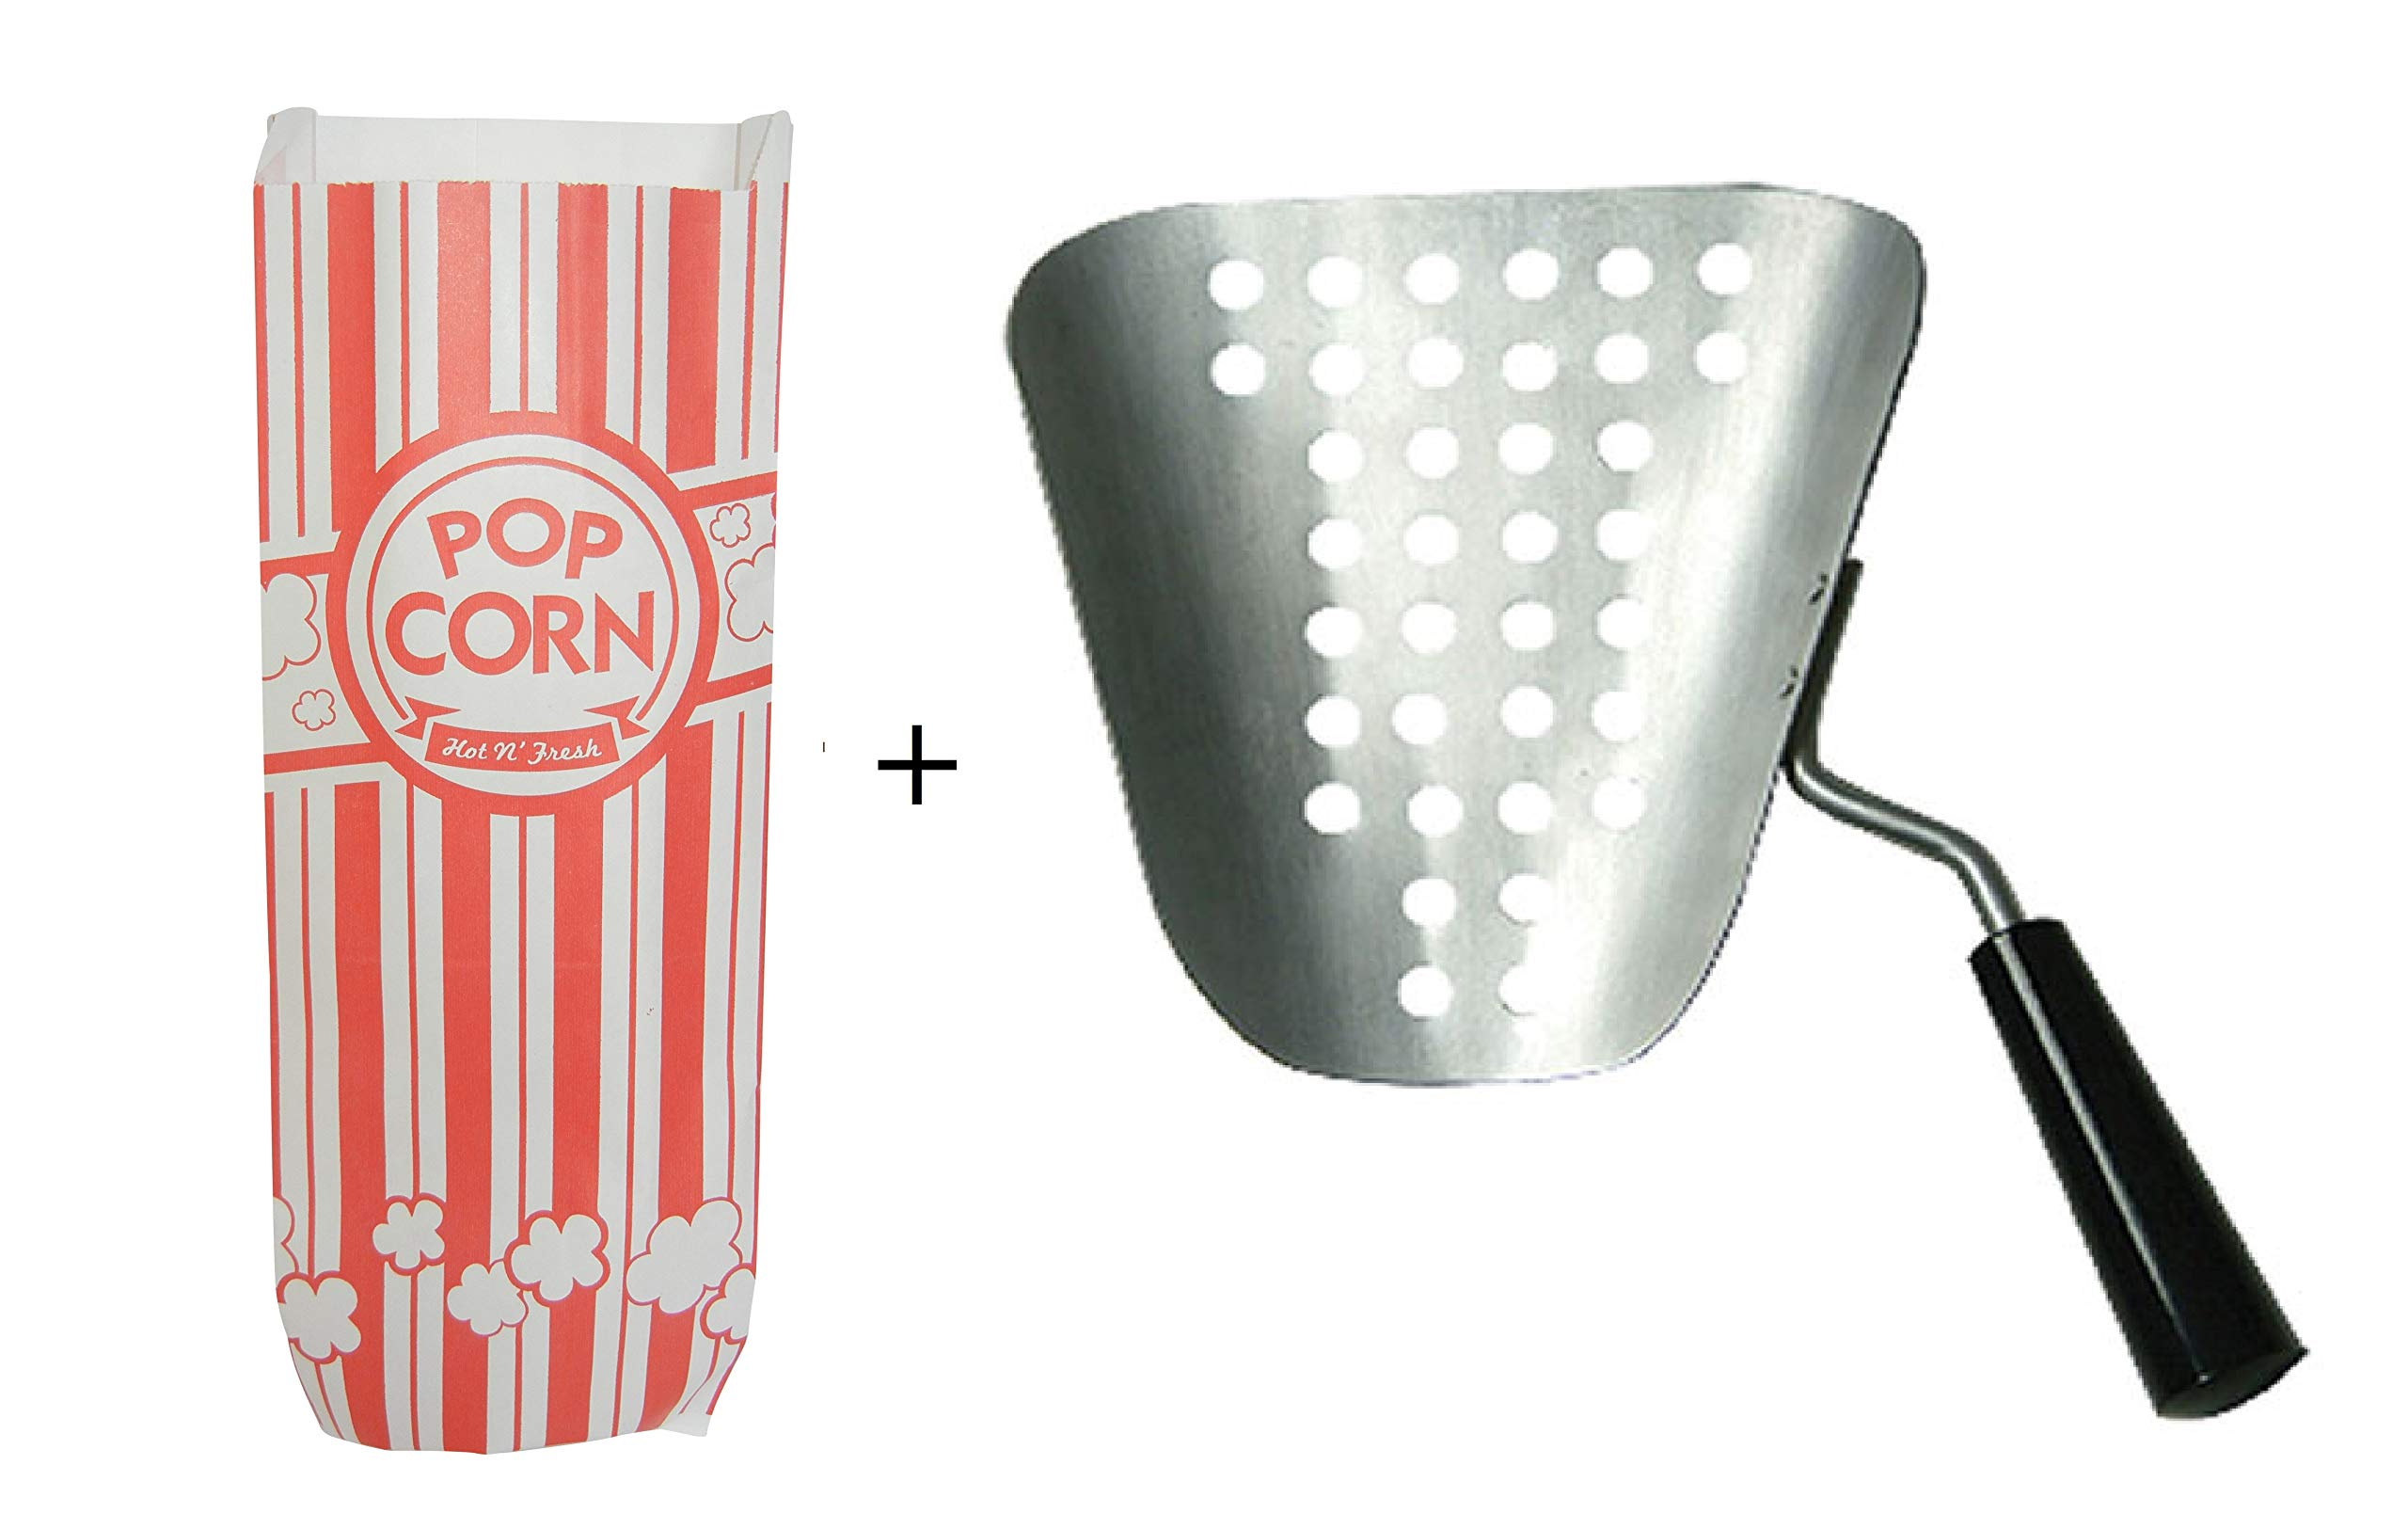 Benchmark 42030 Aluminum Speed Scoop Bundled with 30 Carnival King Popcorn Bags 2 oz Red and White Bags